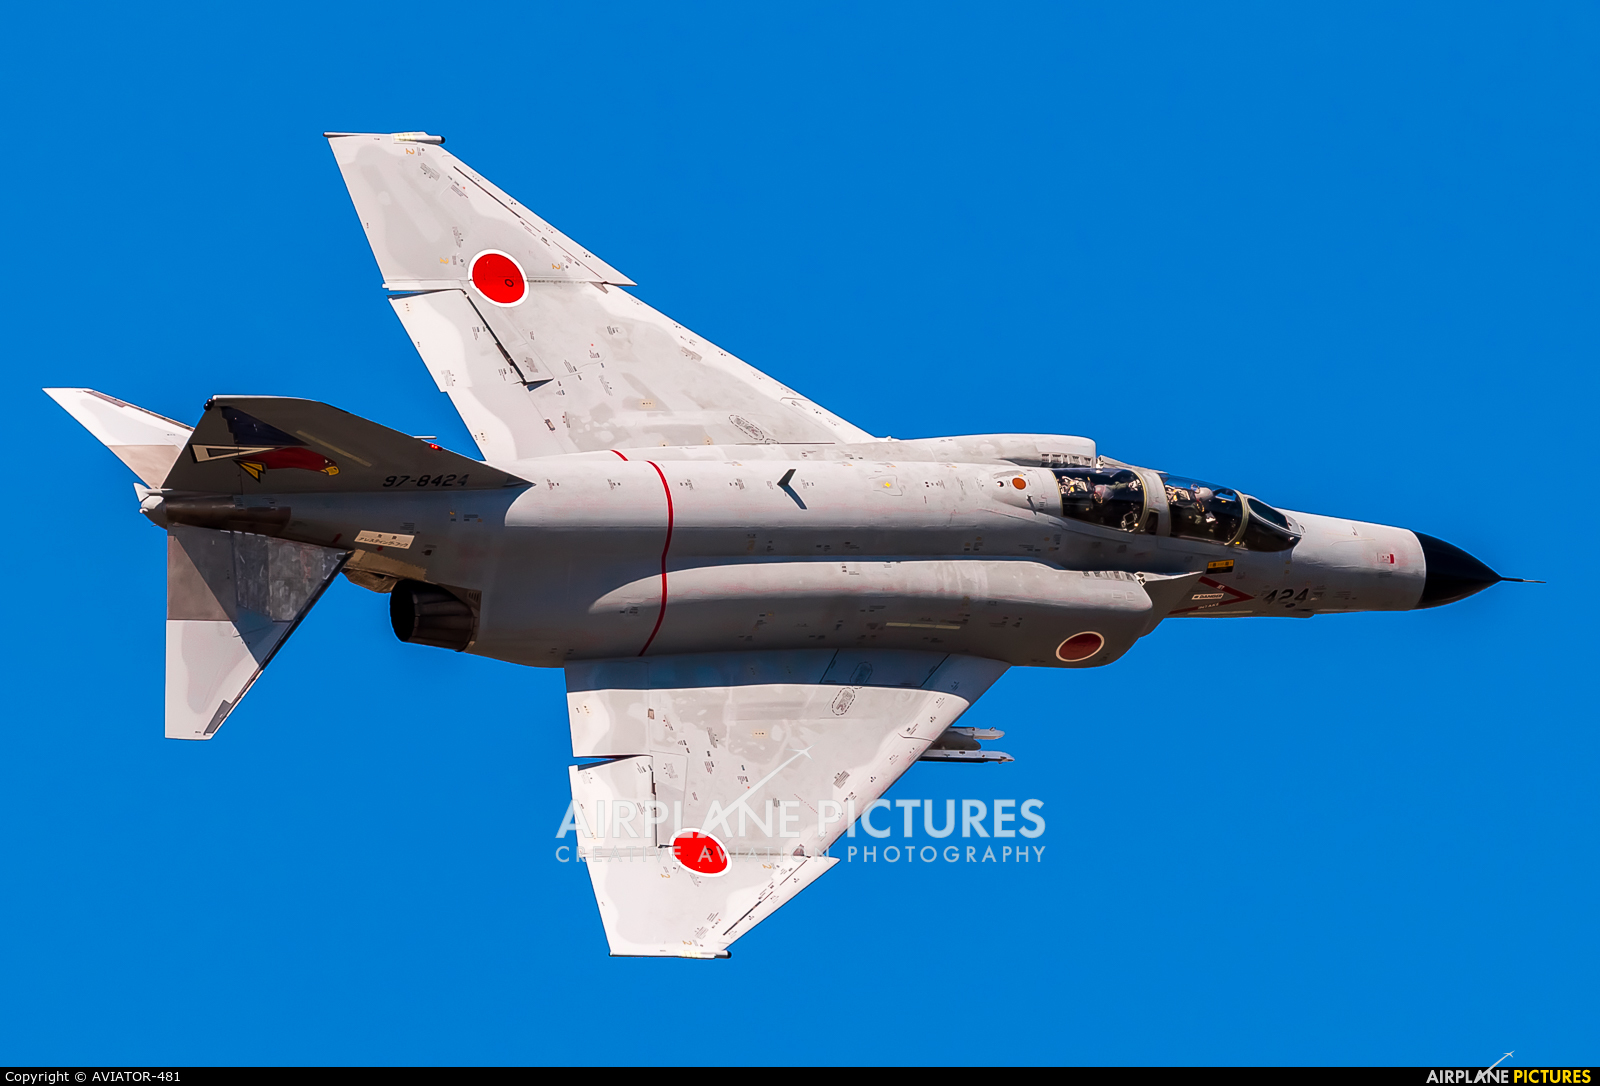 Japan - Air Self Defence Force 97-8424 aircraft at Ibaraki - Hyakuri AB